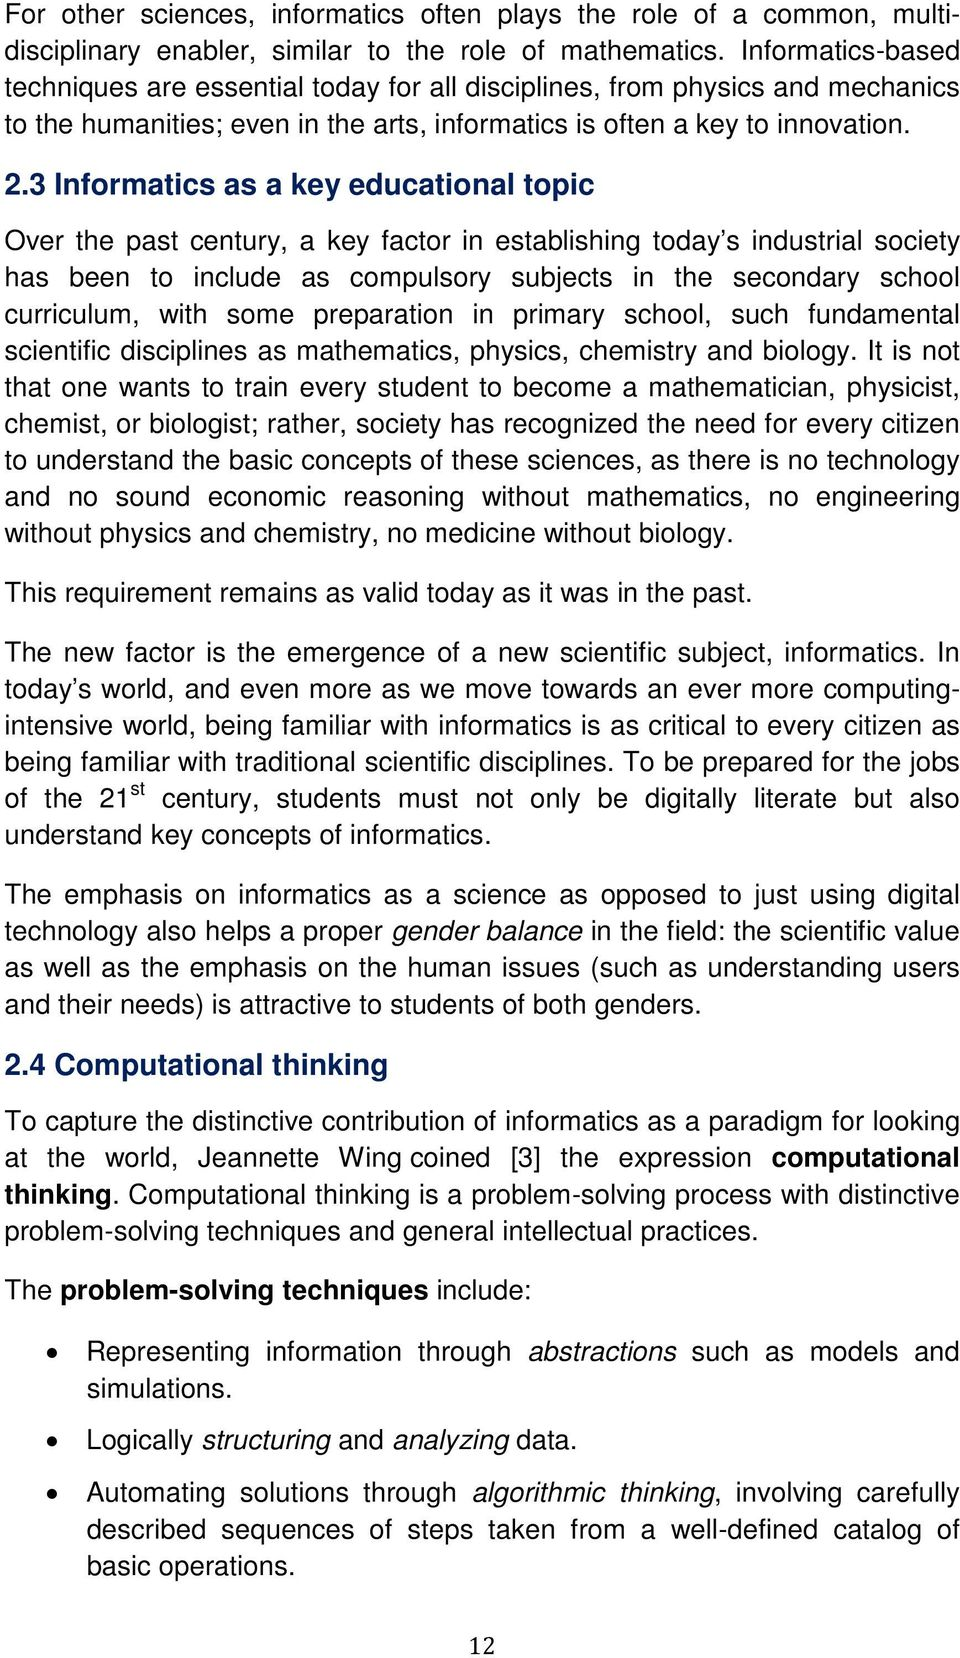 3 Informatics as a key educational topic Over the past century, a key factor in establishing today s industrial society has been to include as compulsory subjects in the secondary school curriculum,